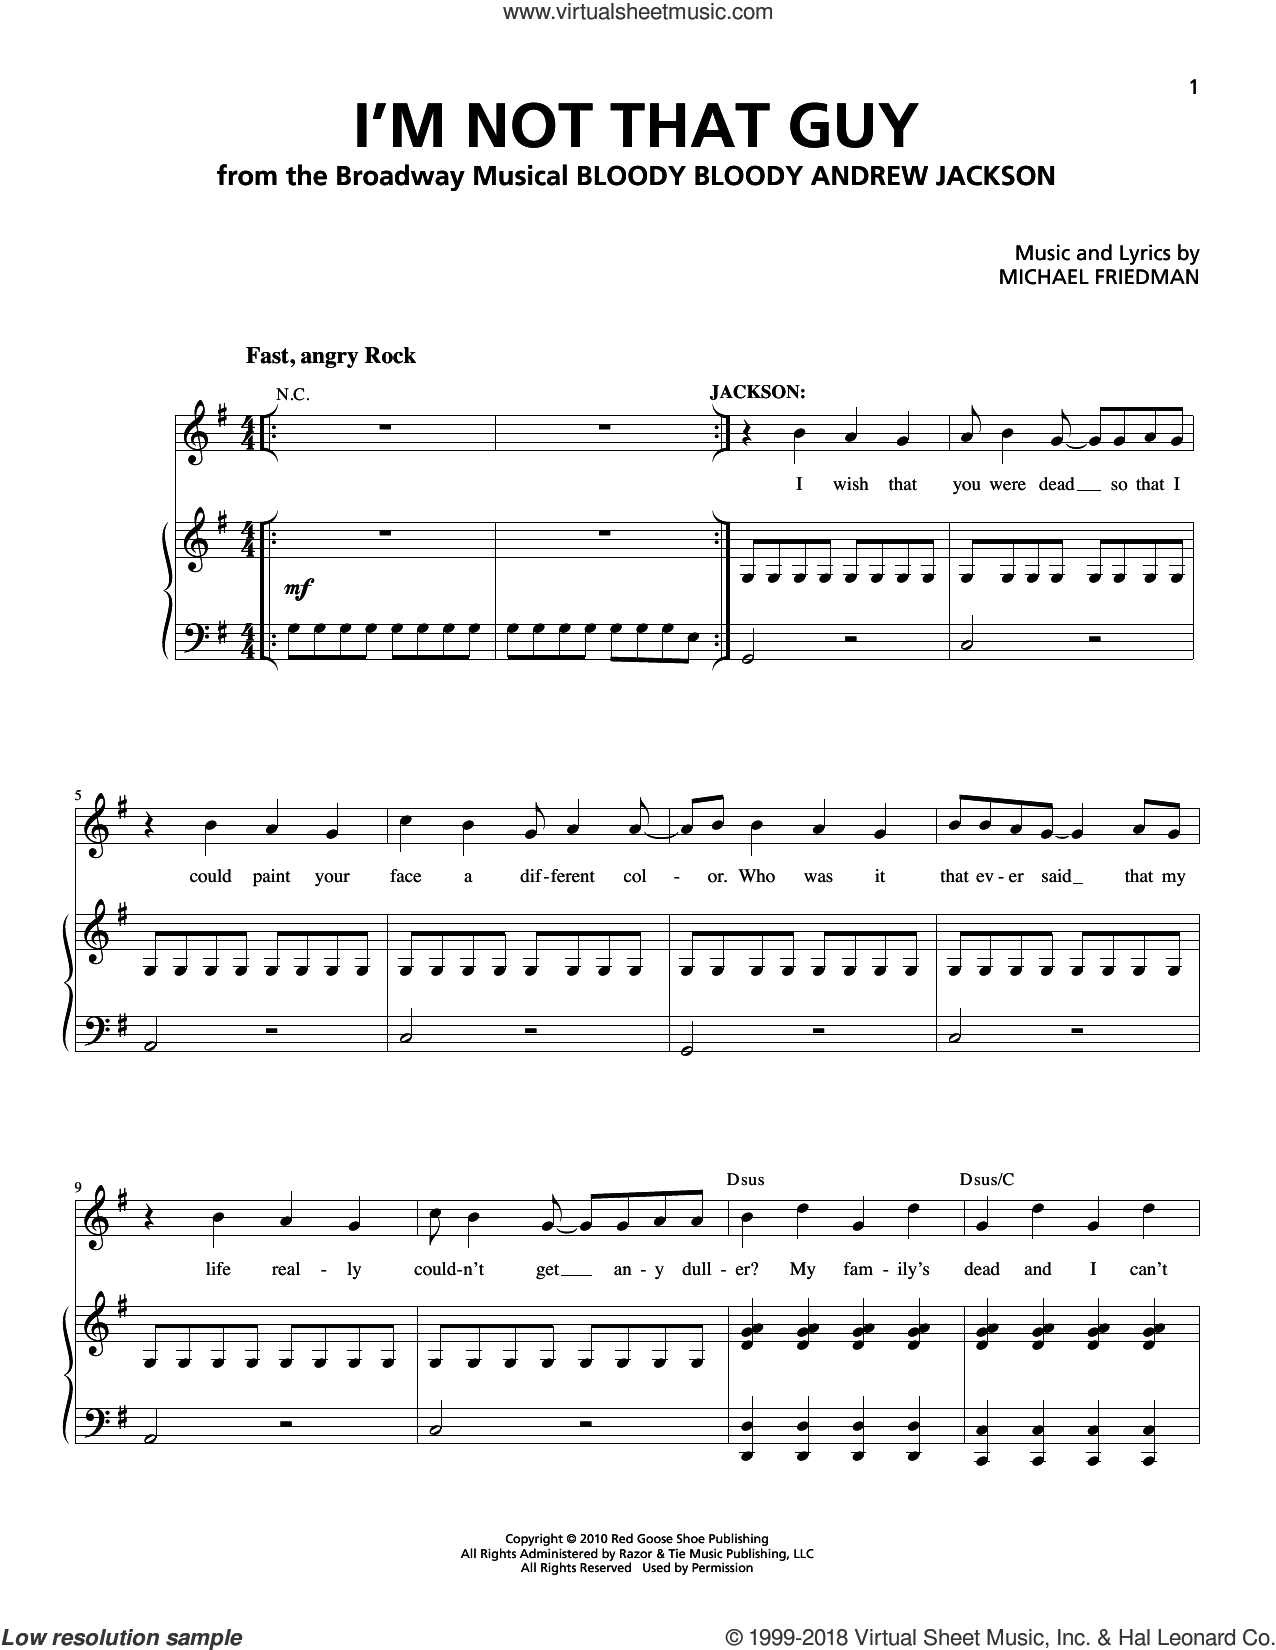 I'm Not That Guy sheet music for voice and piano by Michael Friedman. Score Image Preview.